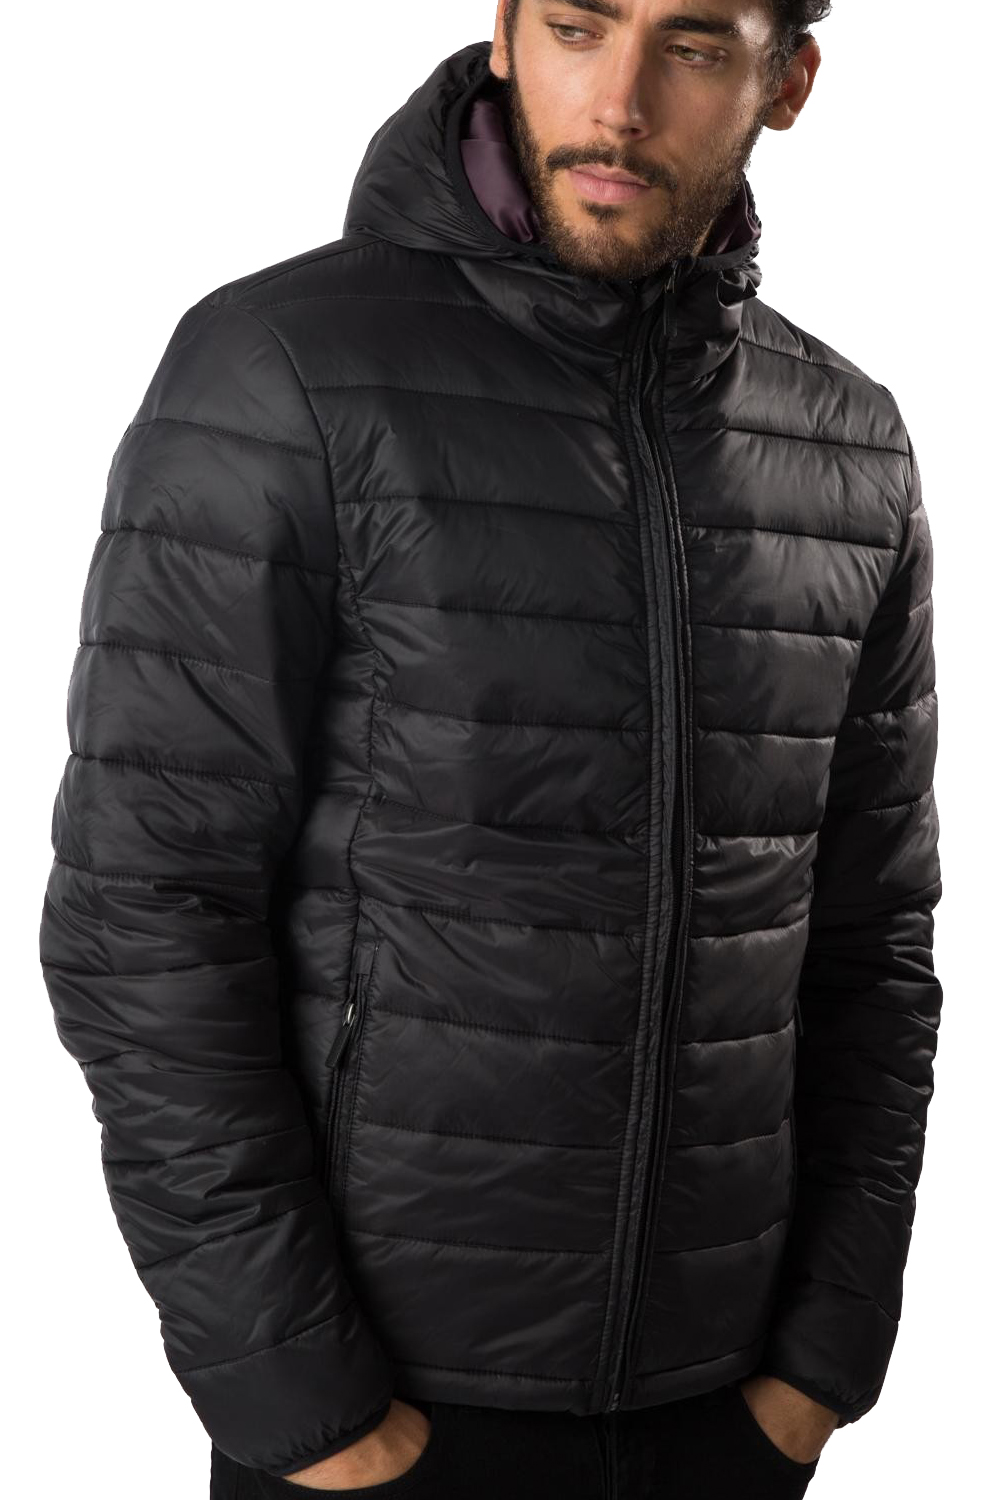 Similar Products to Fjallraven Skogso Padded Jacket - Men's